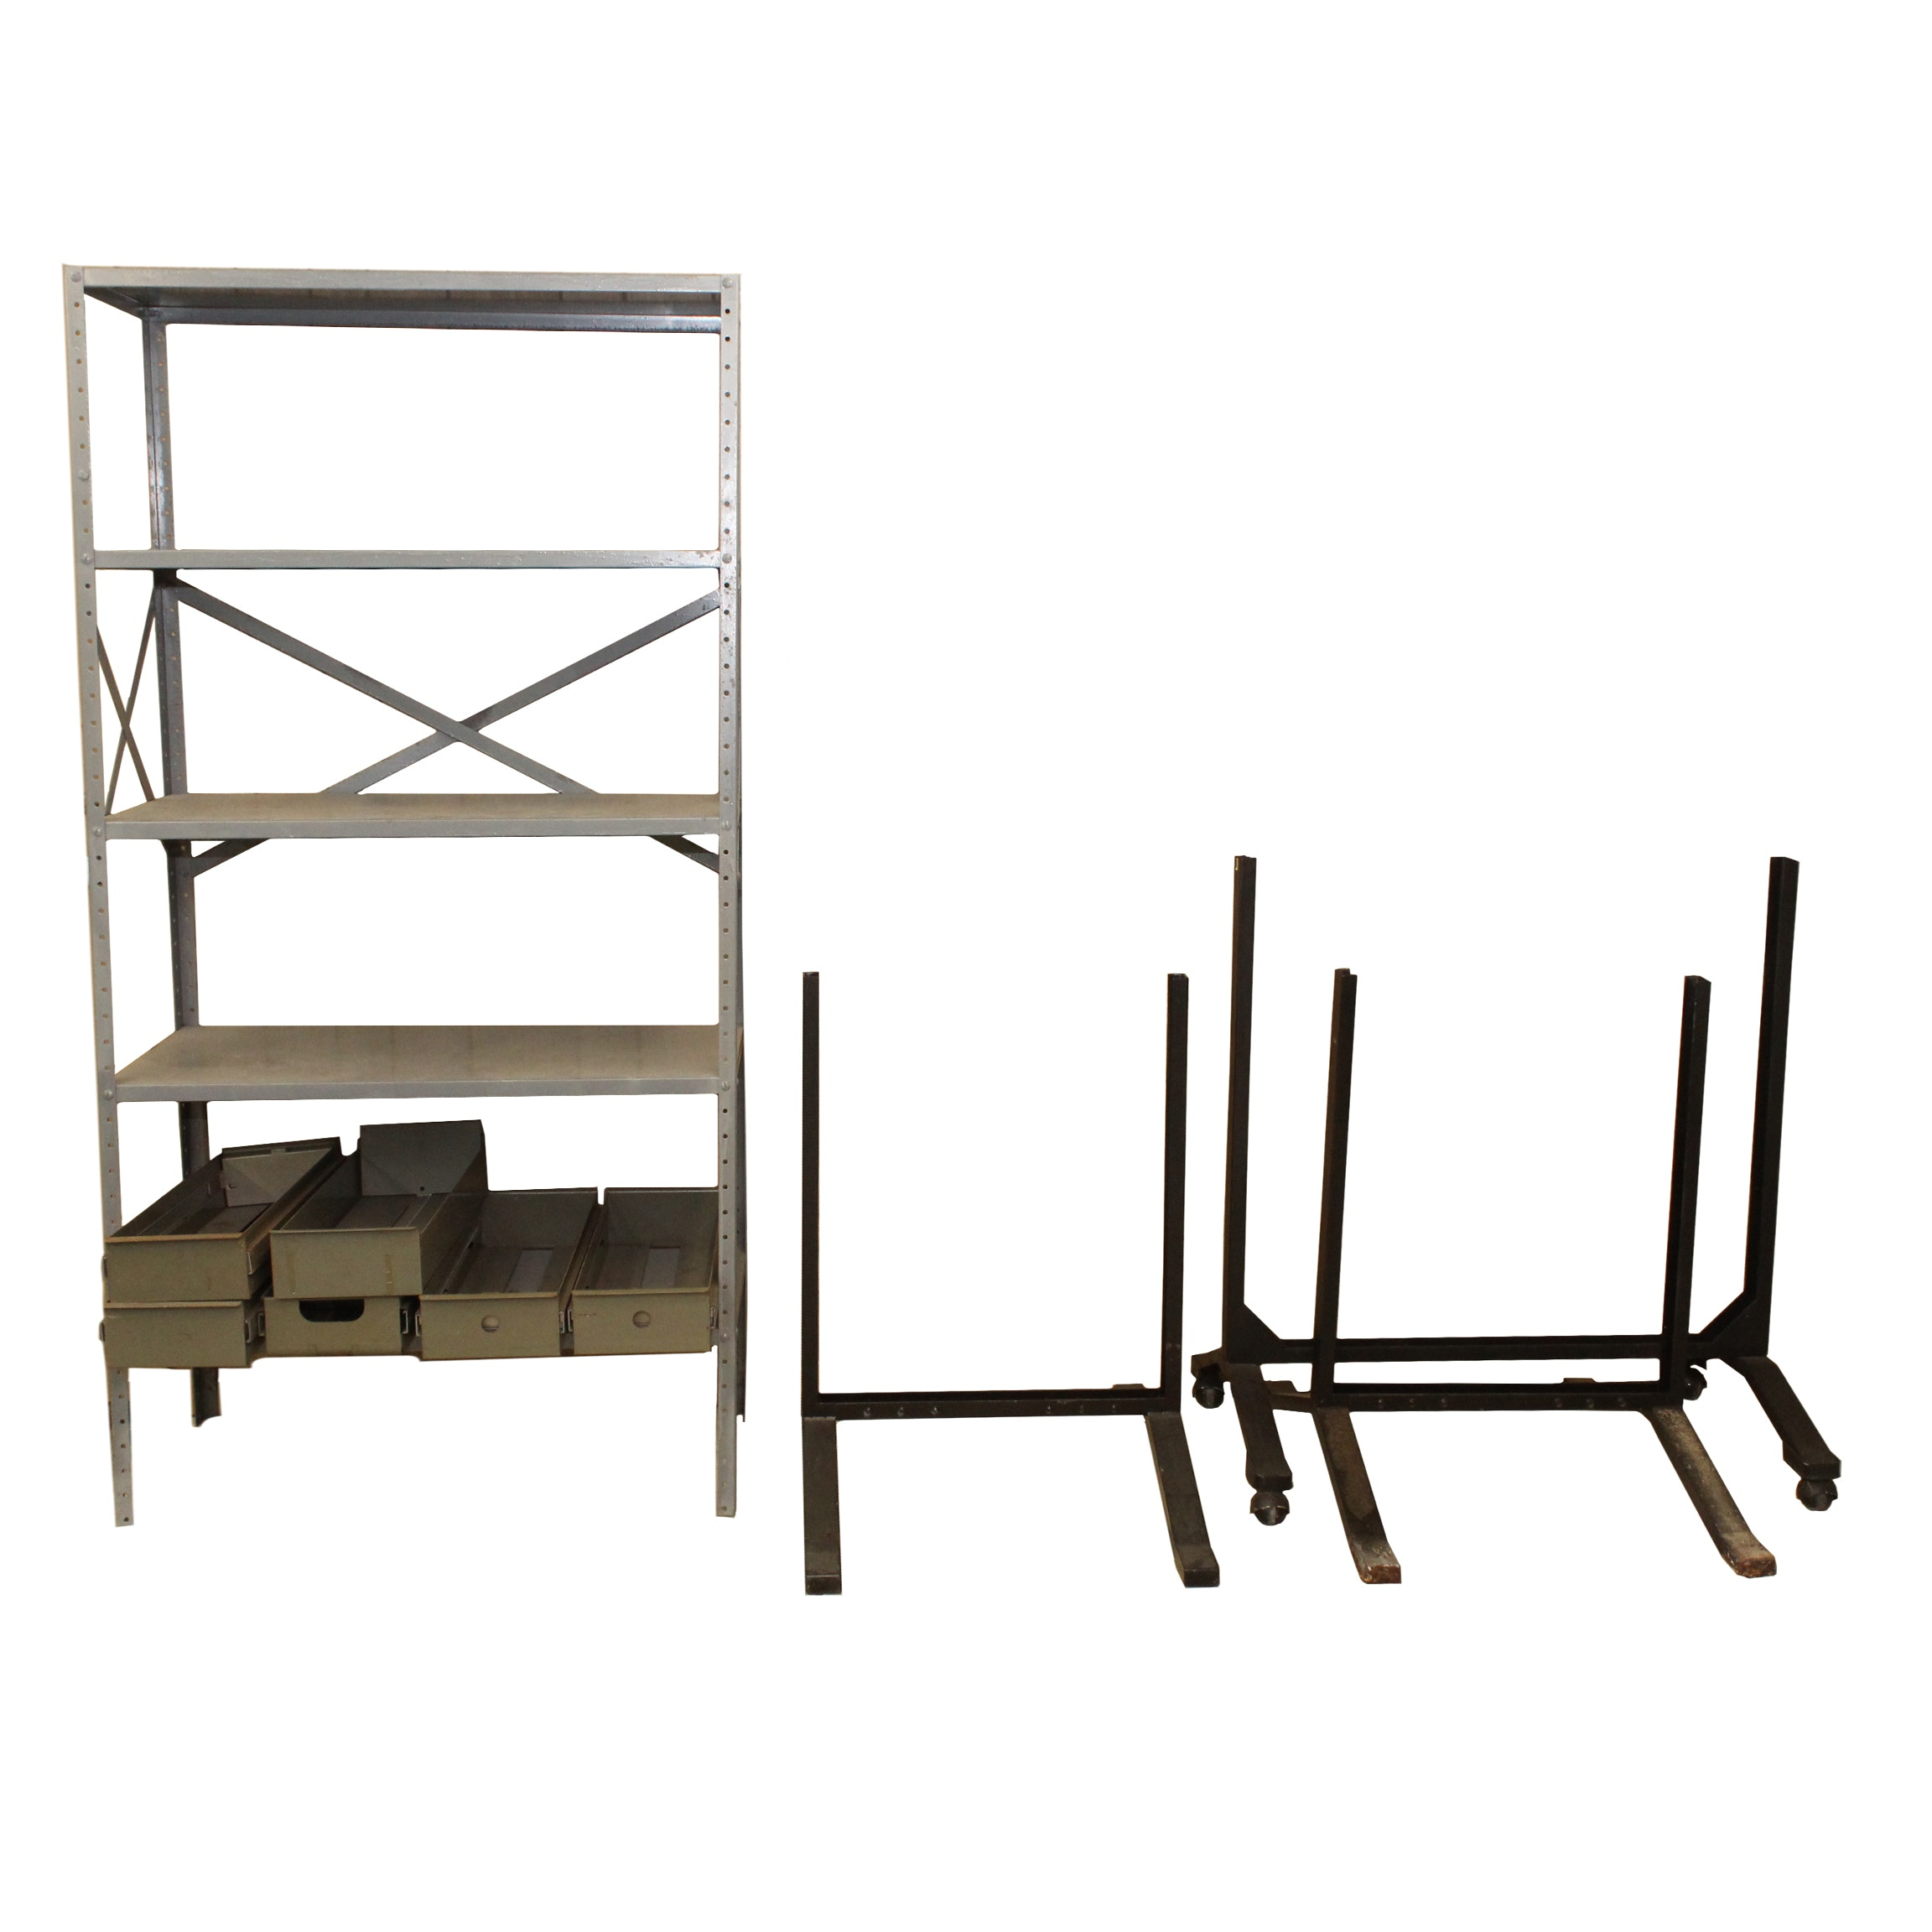 Metal Drawers and Shelving Unit